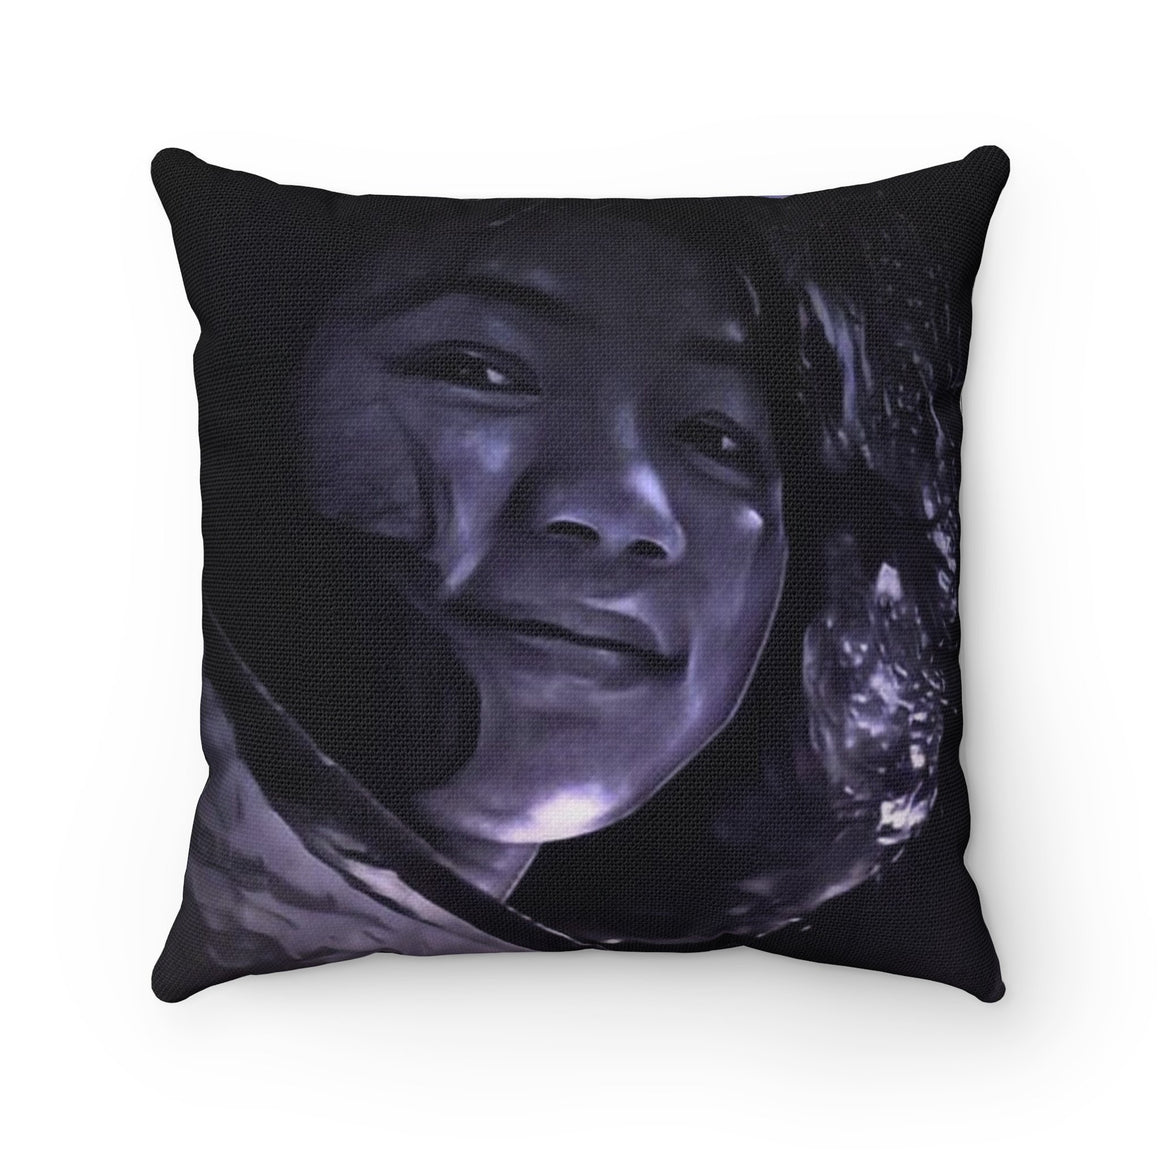 Levi Thang Vintage Face Design N Spun Polyester Square Pillow Case